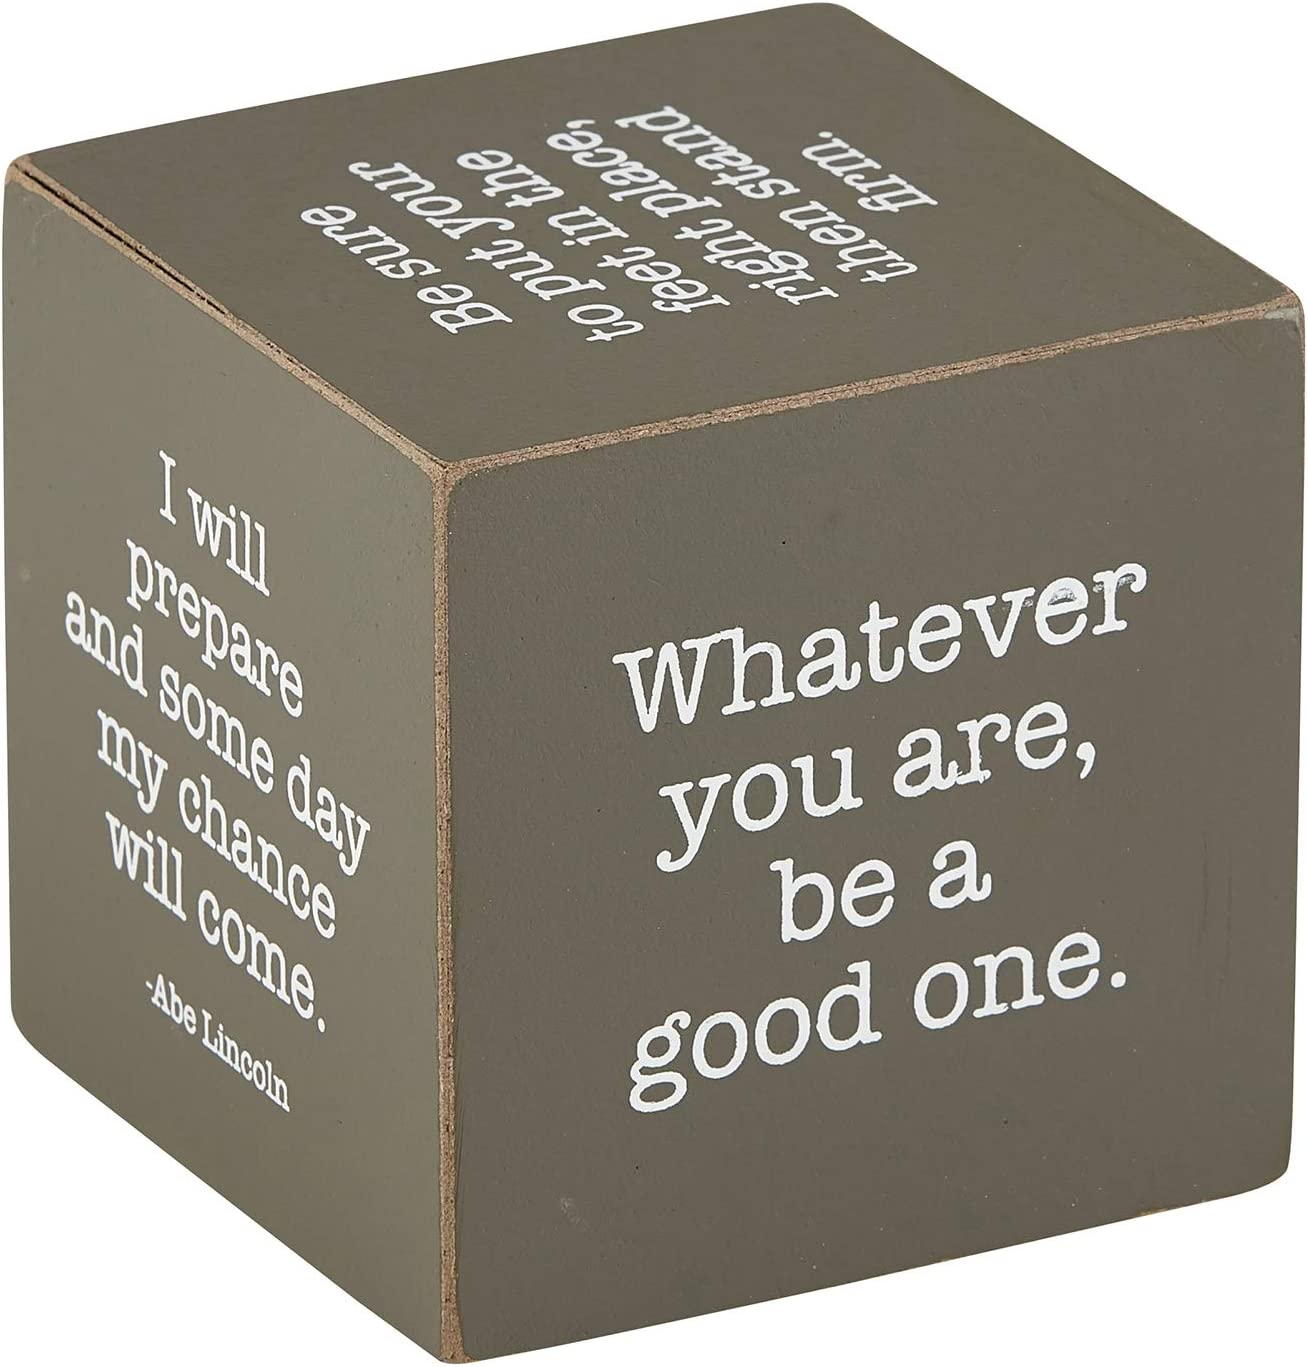 Creative Brands Well Said Wooden Quote Max 86% OFF Las Vegas Mall Lin x 3-Inch Cube 3 Abe